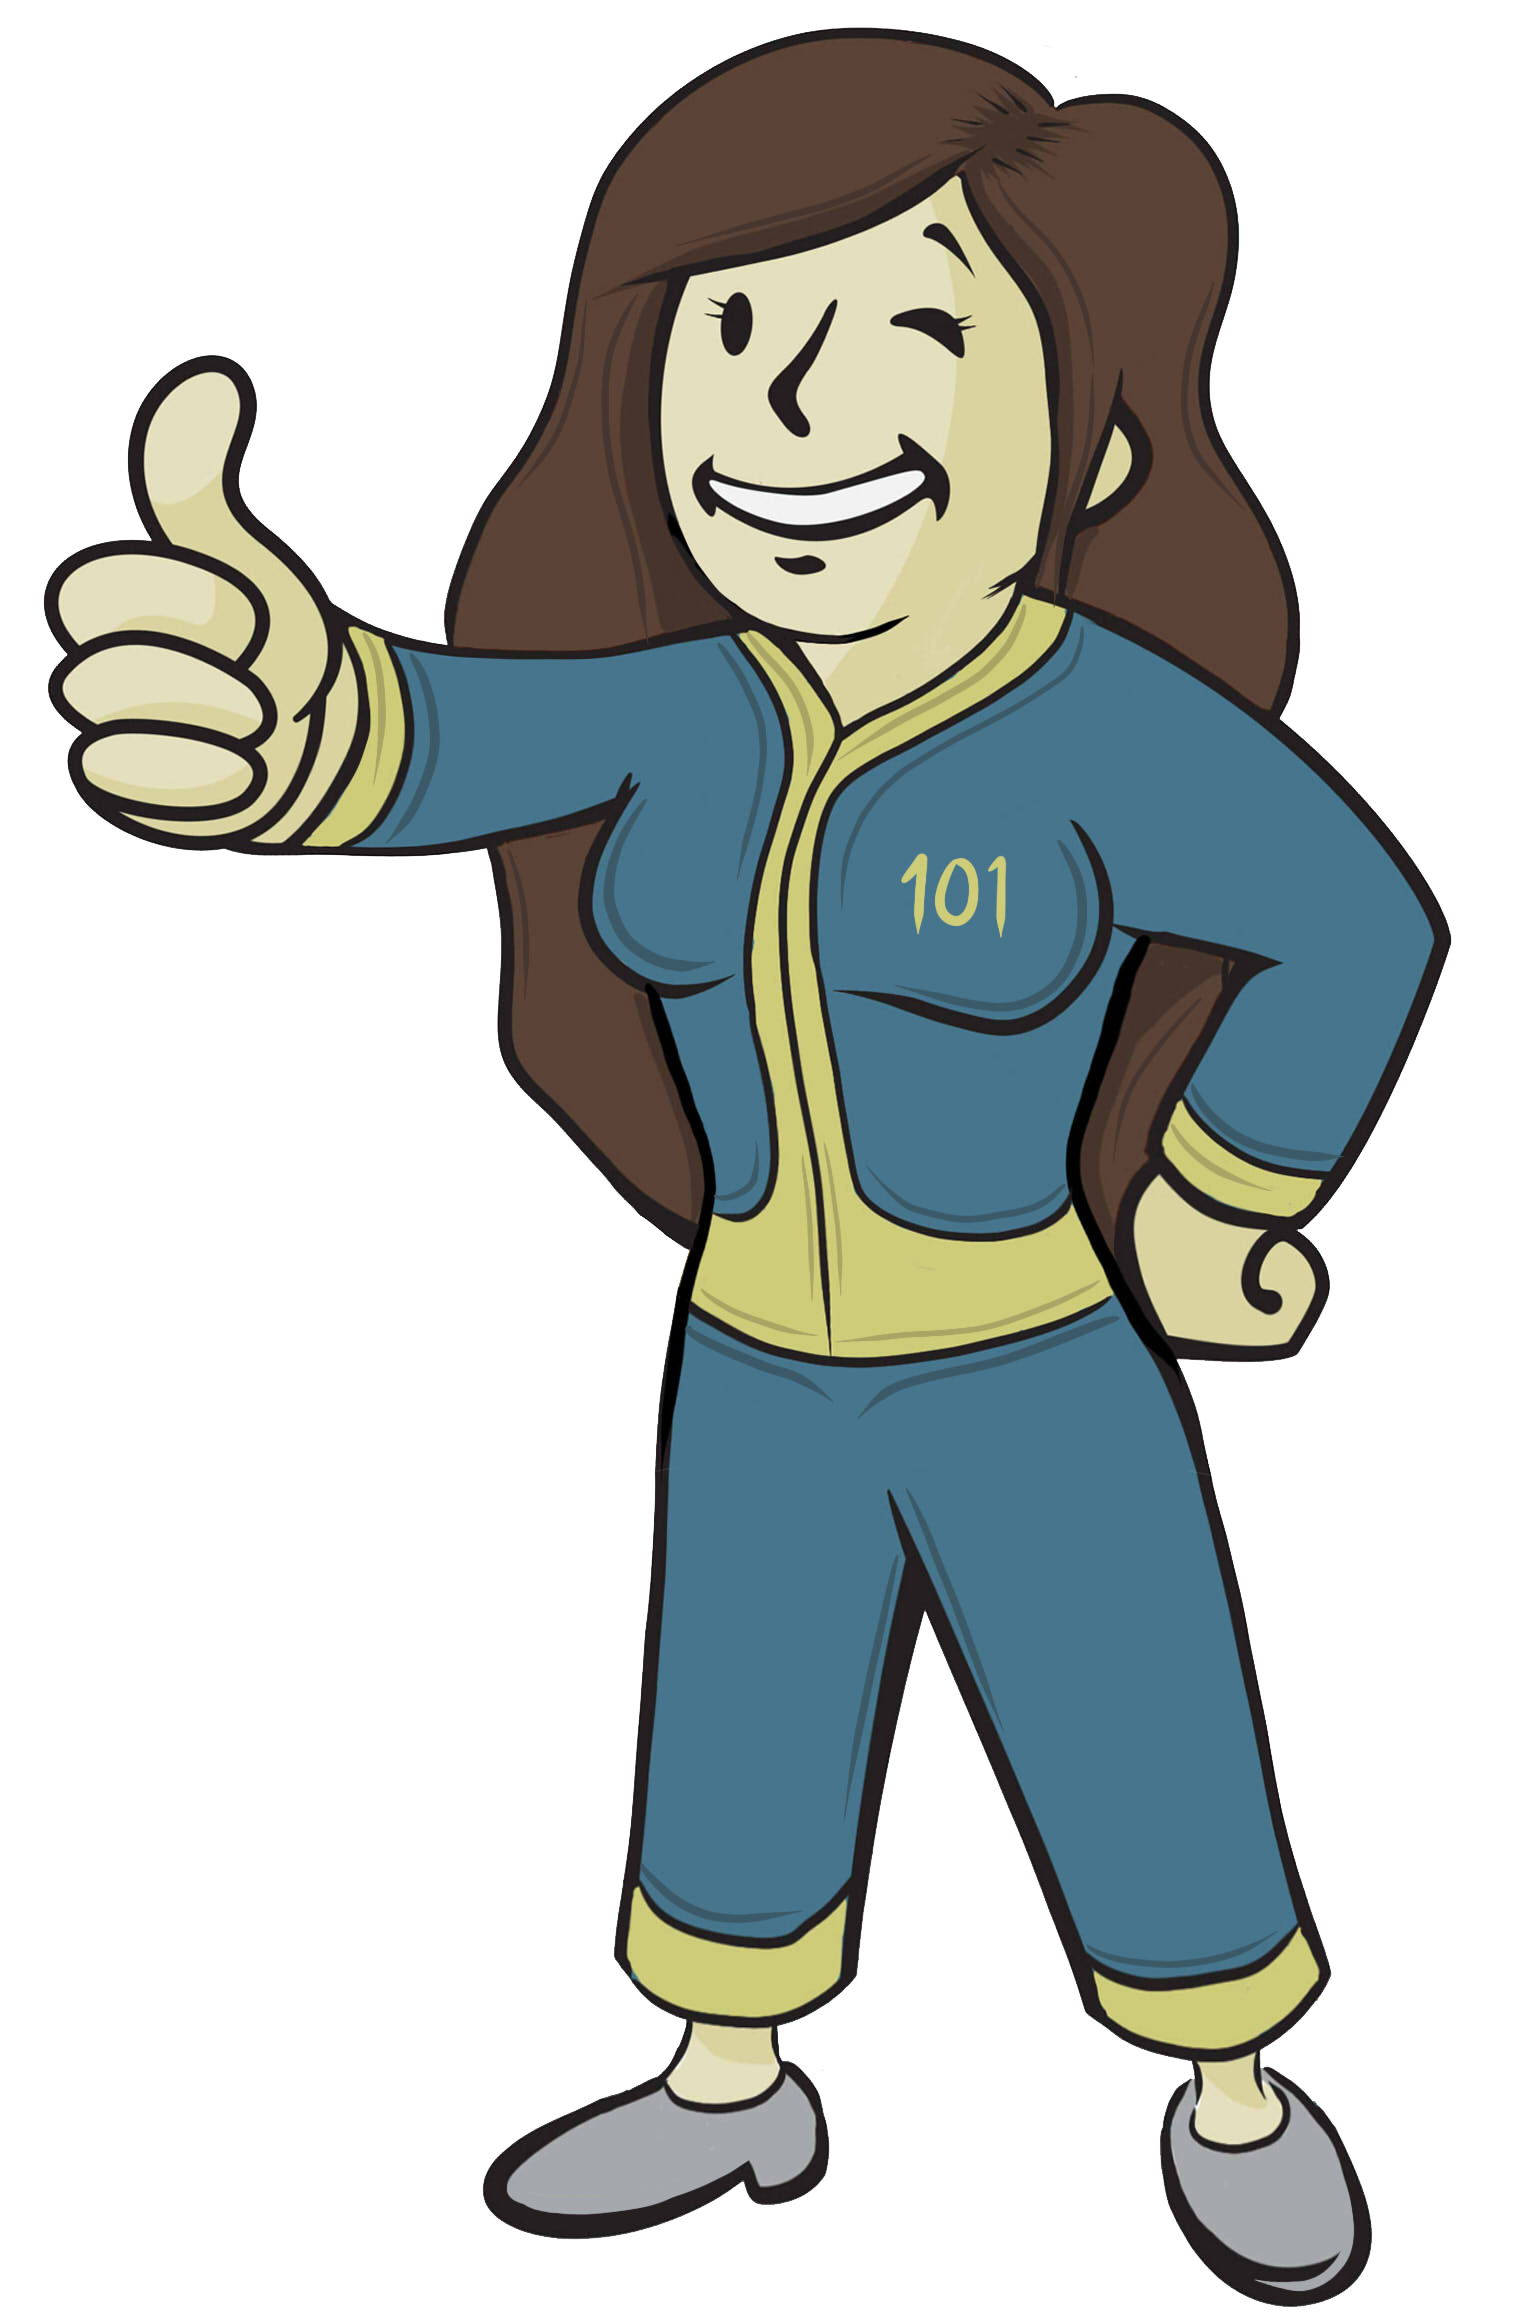 Vault girl clipart png black and white download Vault-girl by YuliaH95 on DeviantArt png black and white download